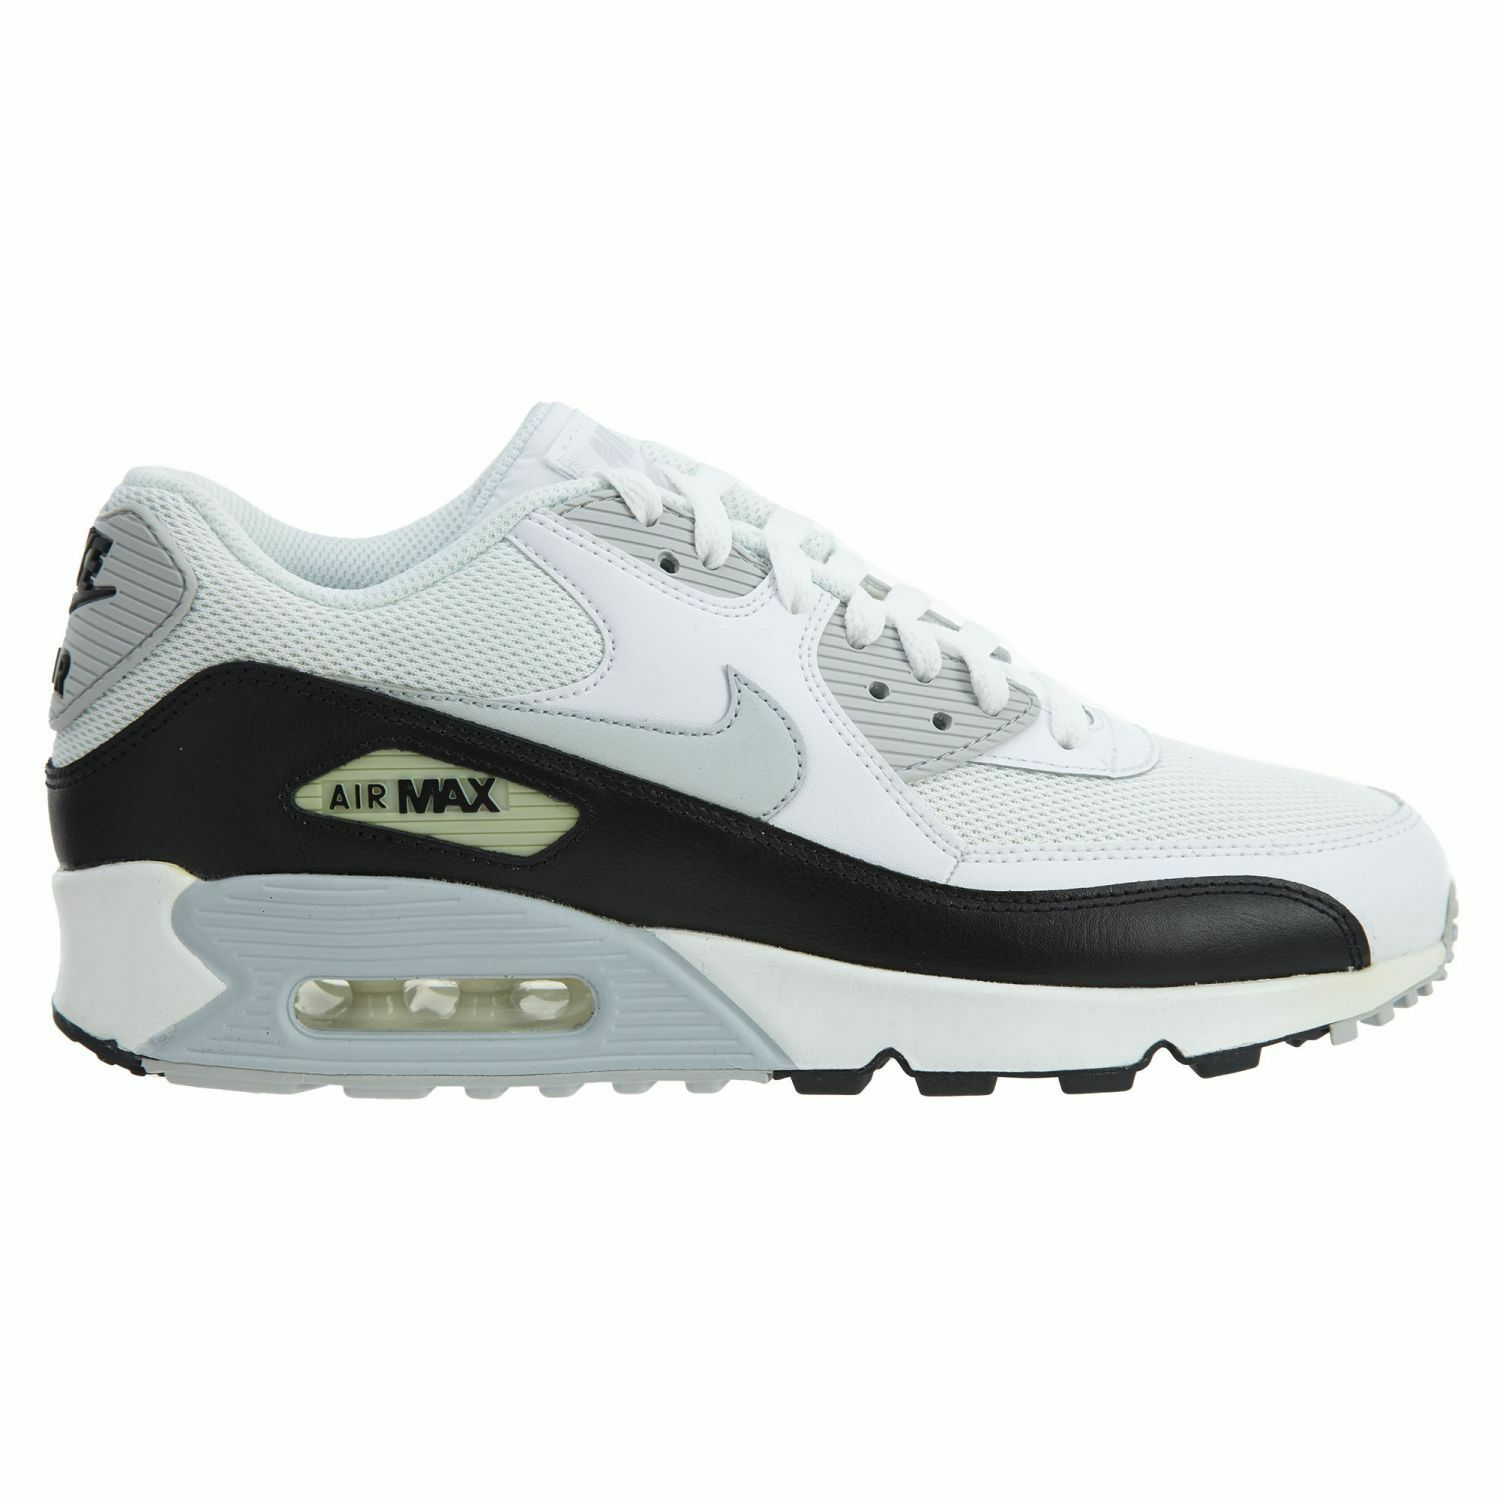 Nike Air Max 90 Essential Mens 537384-125 White Platinum Running Shoes Size 7.5